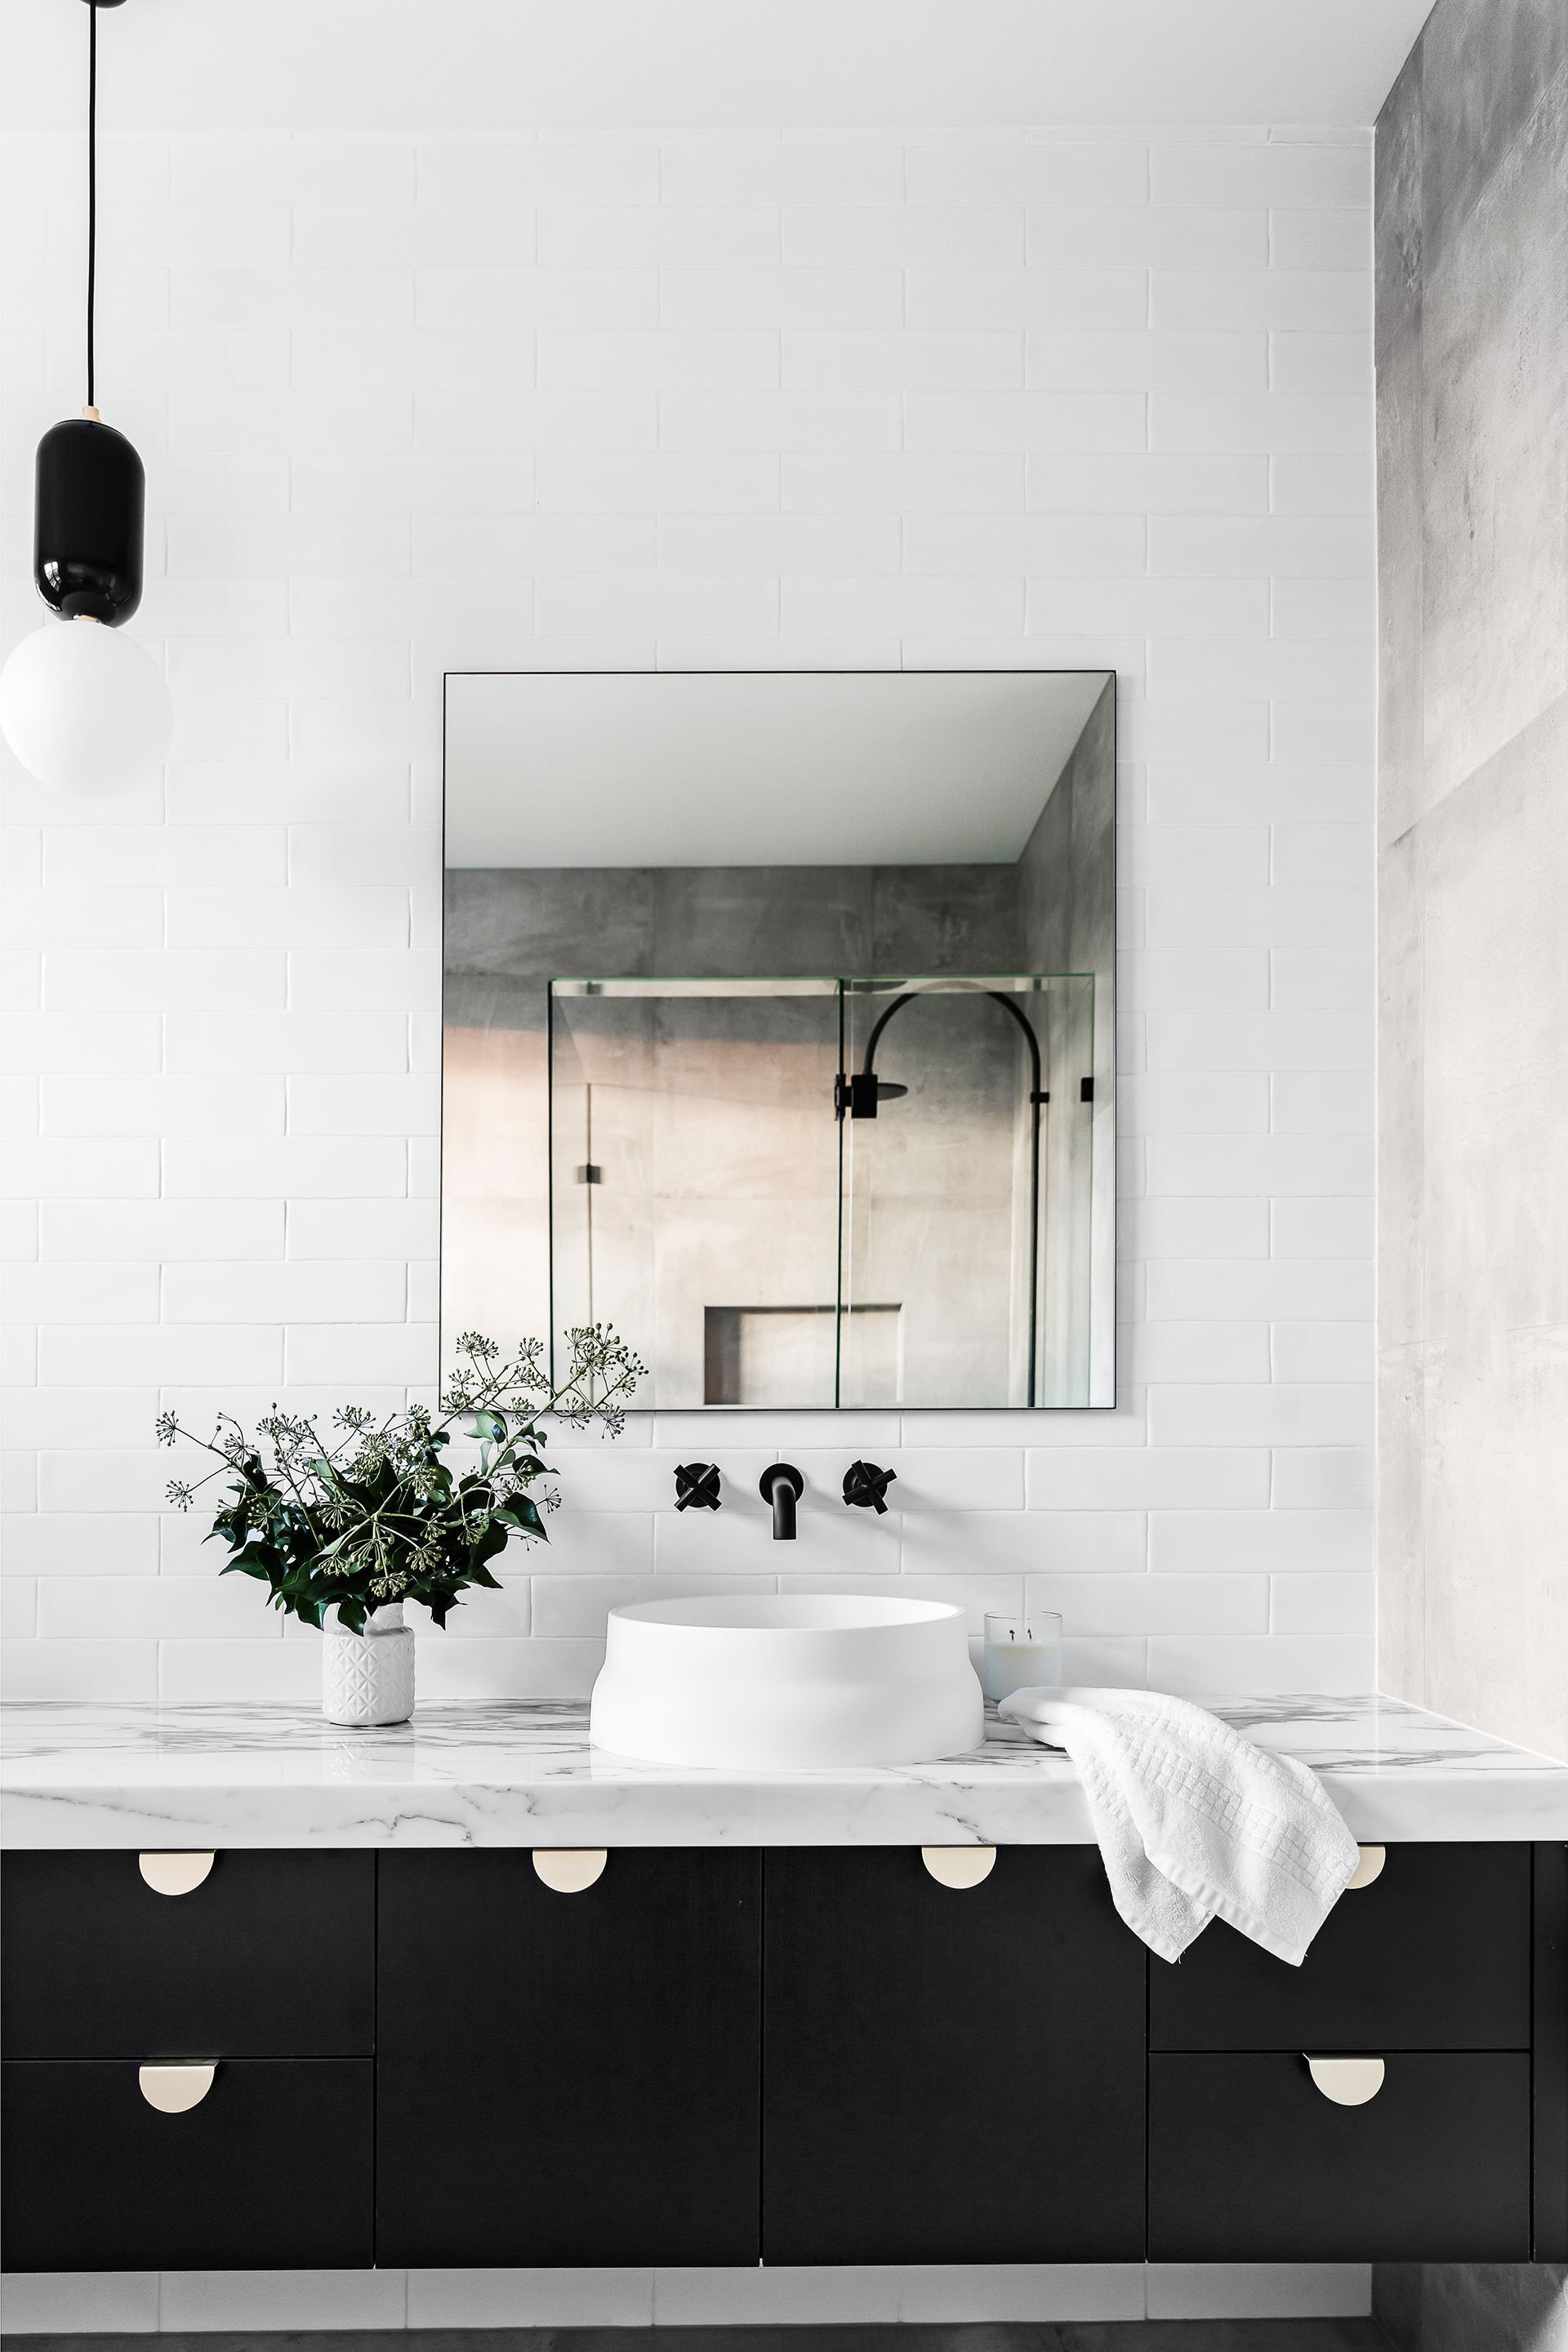 2018 Design Trends for the Bathroom in 2018 | Sustainable Living ...